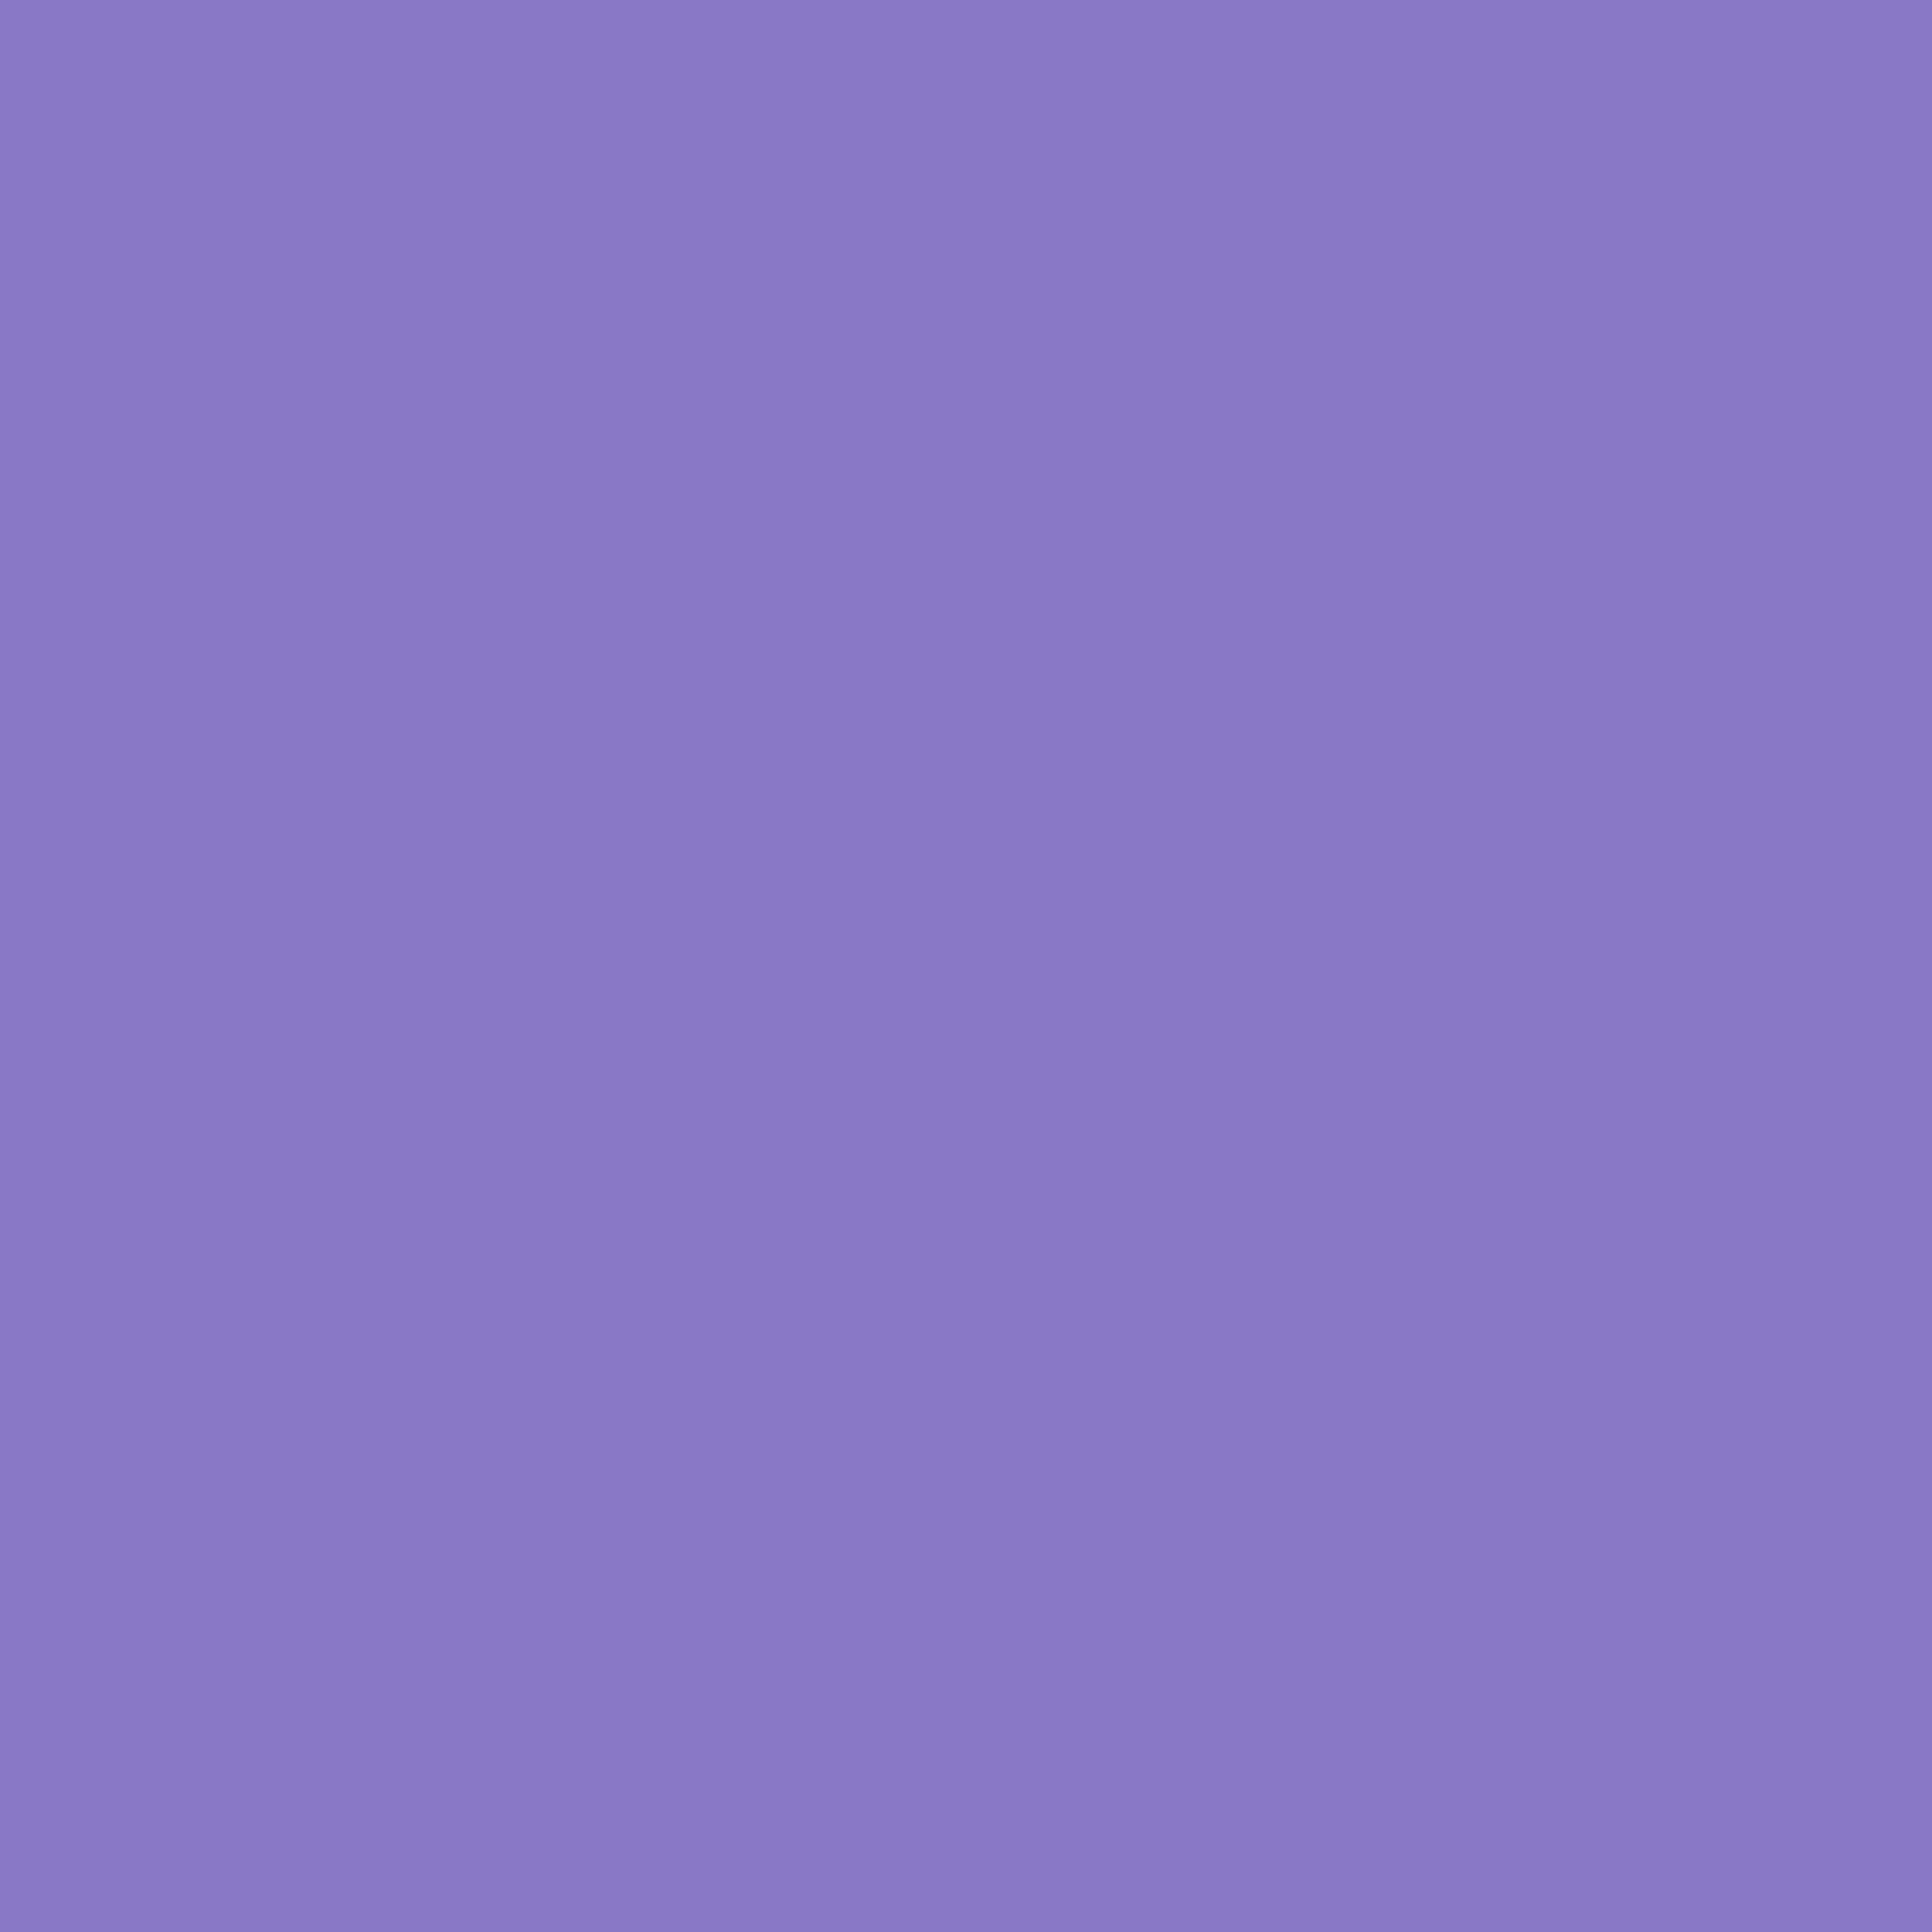 3600x3600 Ube Solid Color Background